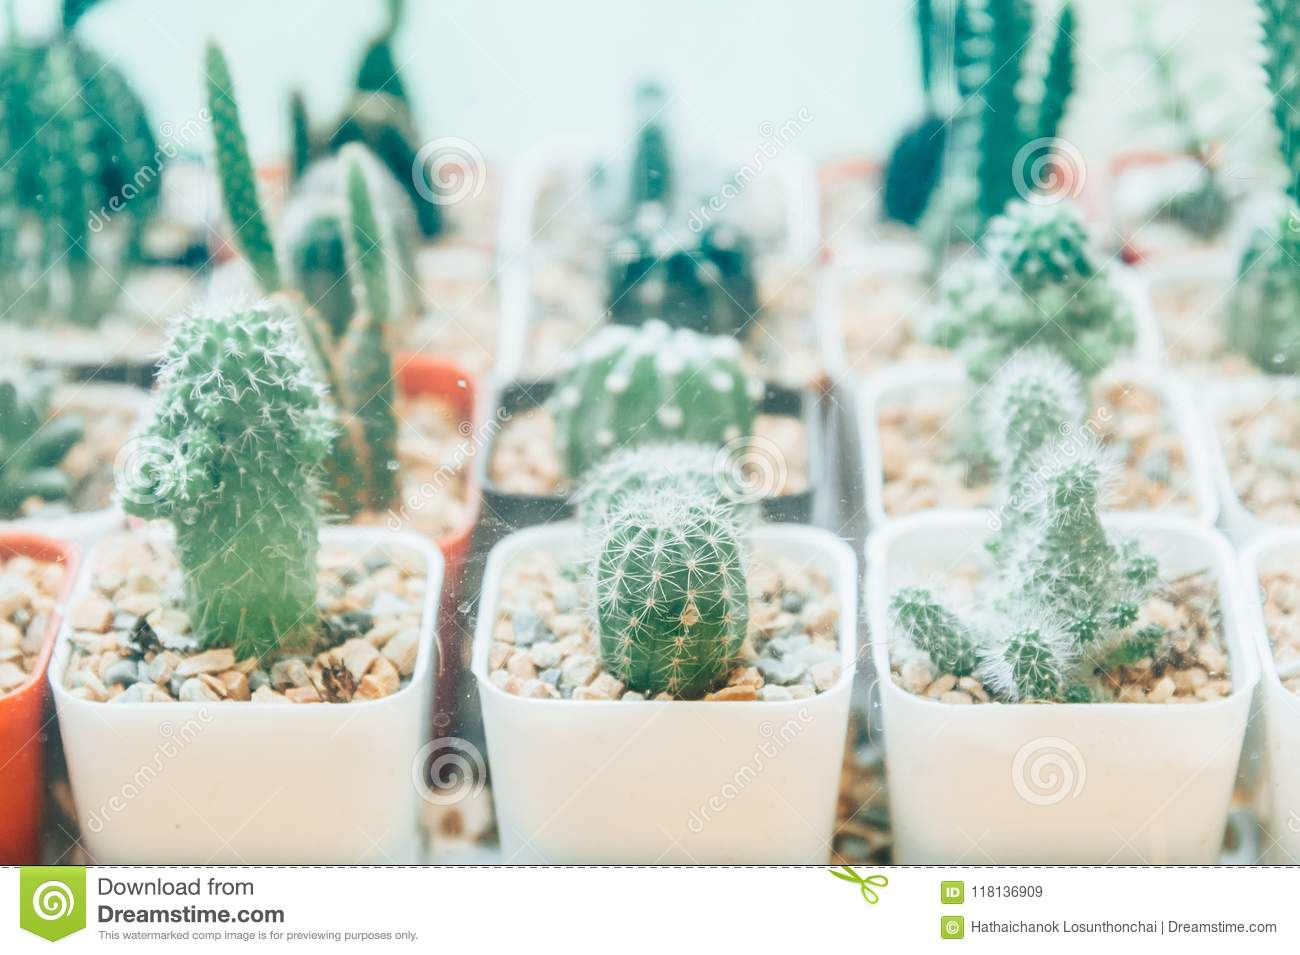 Cactus Plant White Succulent Glass Home Pot Vase Background Potted Succulents Decoration Small Table Terra Stock Image Image Of Natural Cacti 118136909